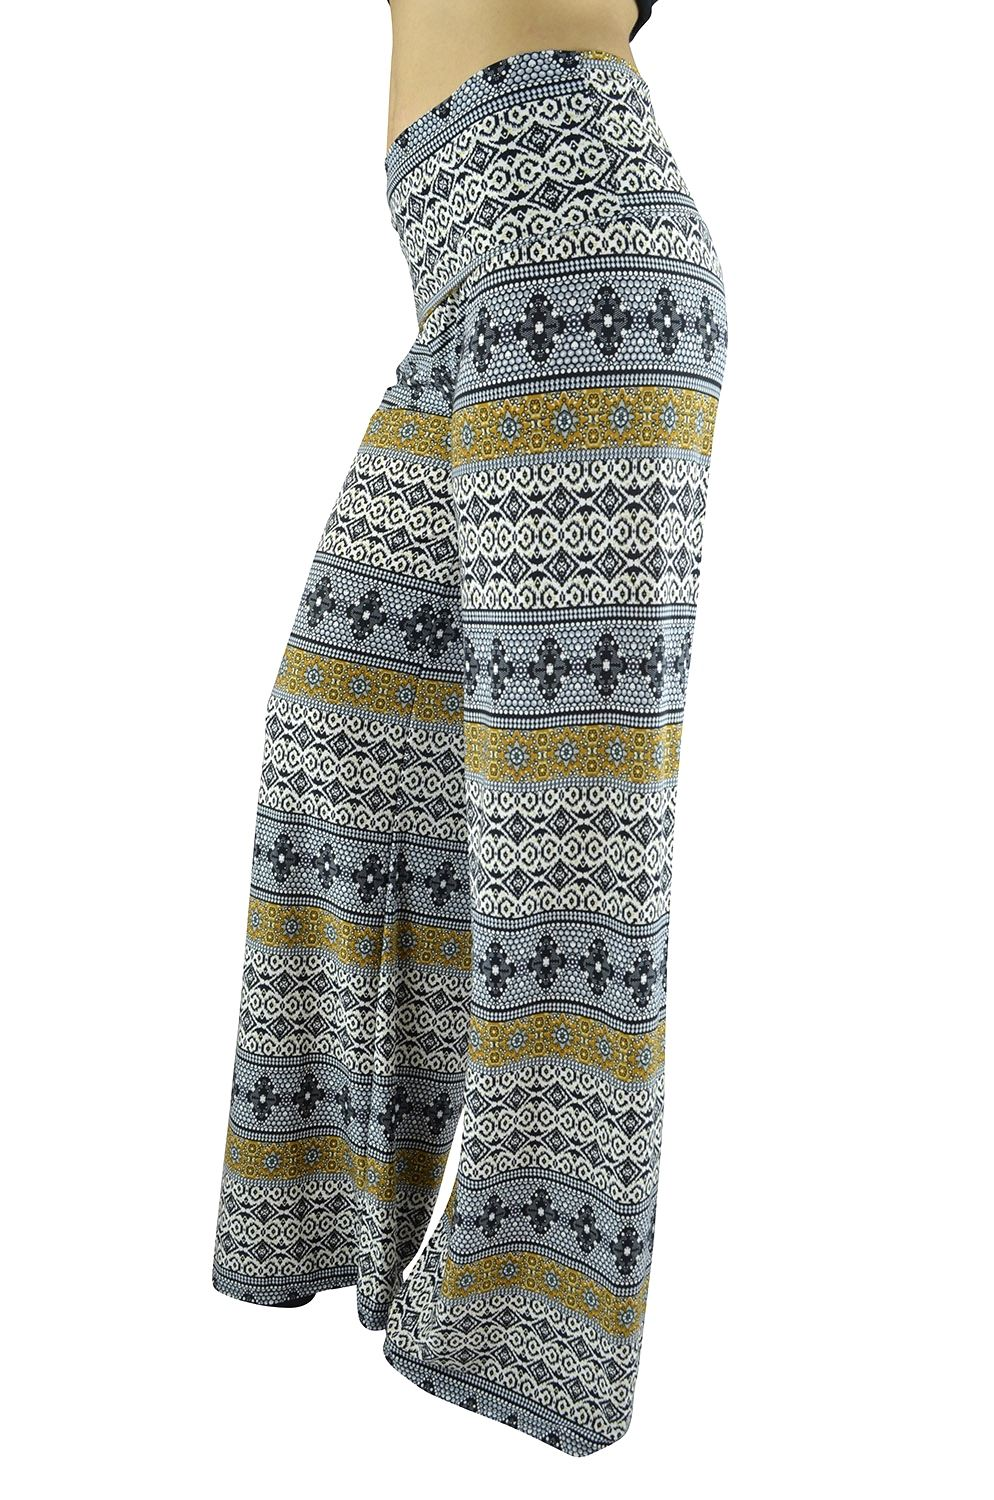 Belle Donne Women Palazzo Pants Chevron Aztec Tribal HighWaist Pants - Gray/Medium